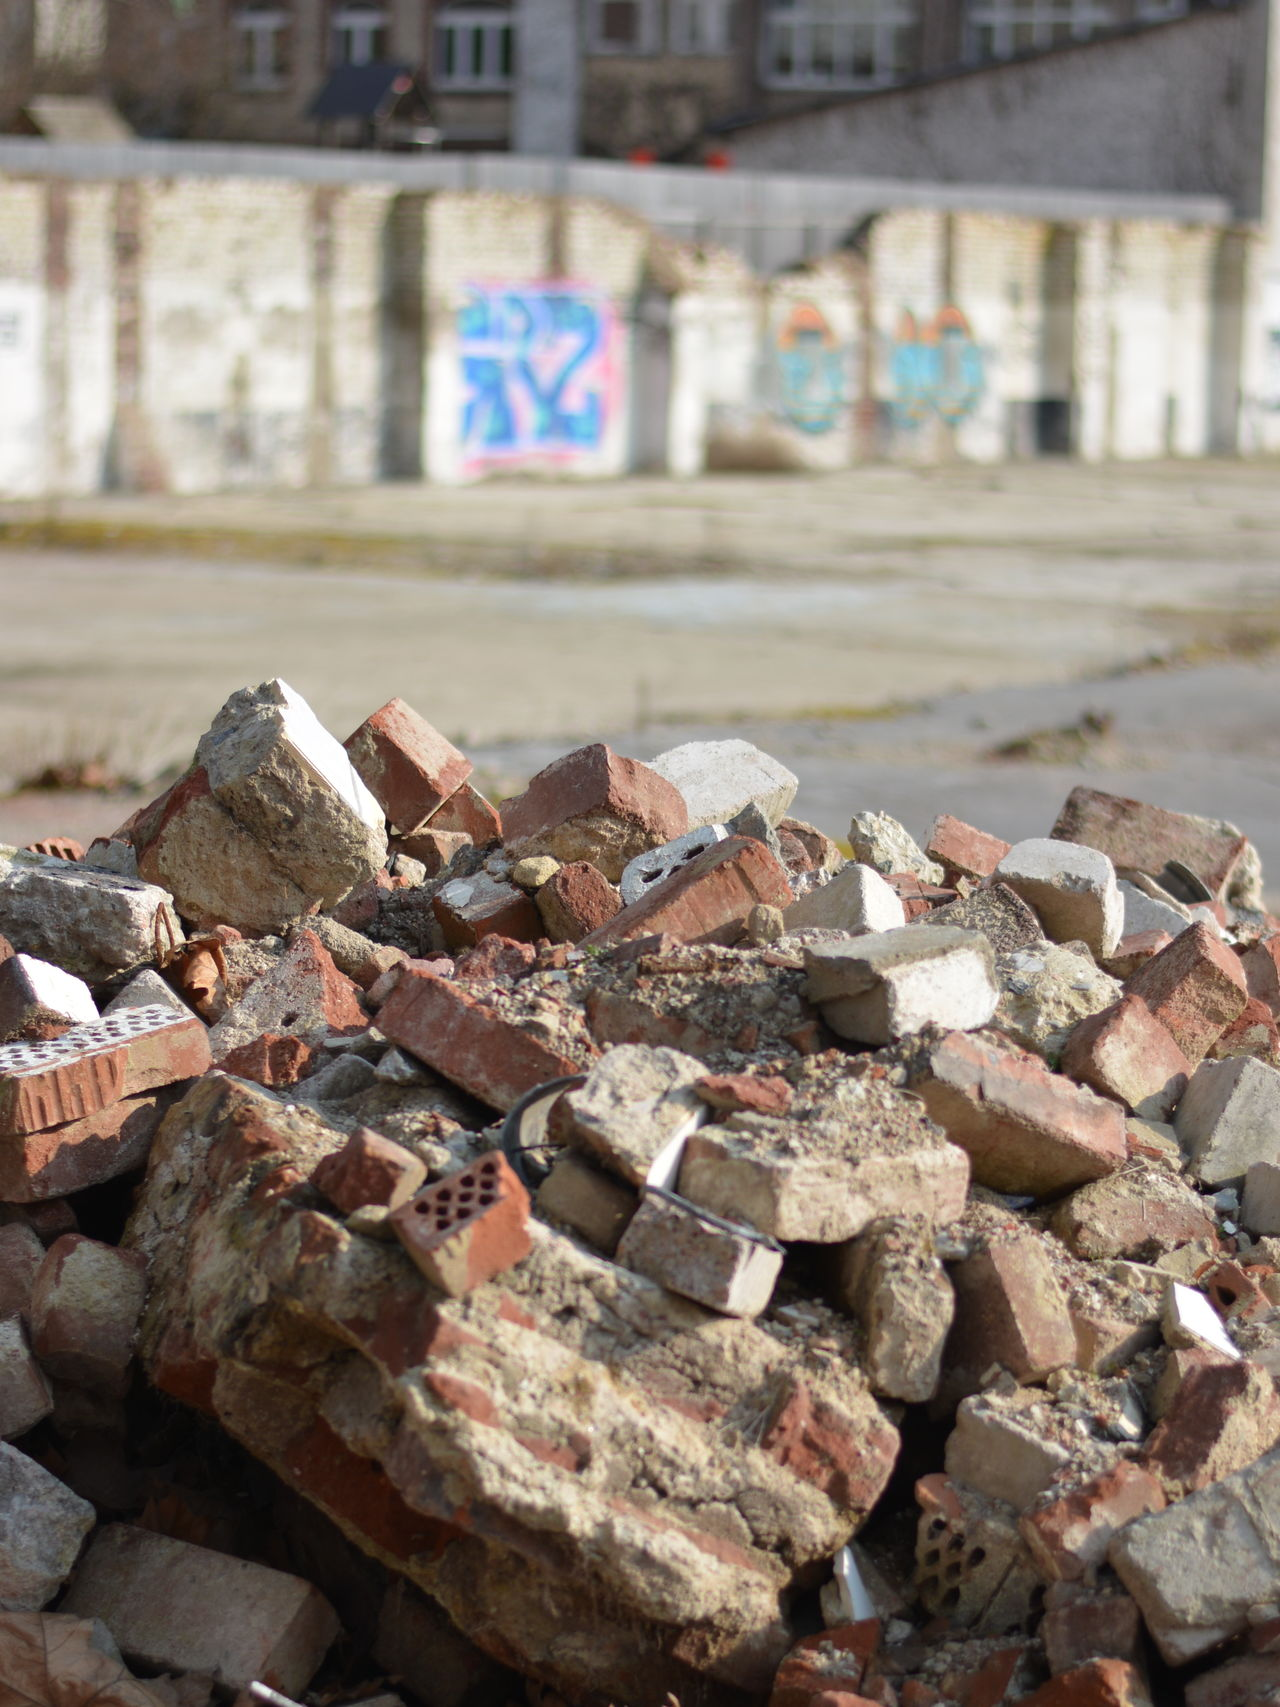 To build up you first have to tear down. Or? Bricks Bricks And Stones Deserted Spaces Deterioration Focus On Foreground Heap Large Group Of Objects No People Open Space Outdoors Parking Lot Rubble Street Art North Rhine-westphalia Nordrhein-Westfalen Duesseldorf Germany